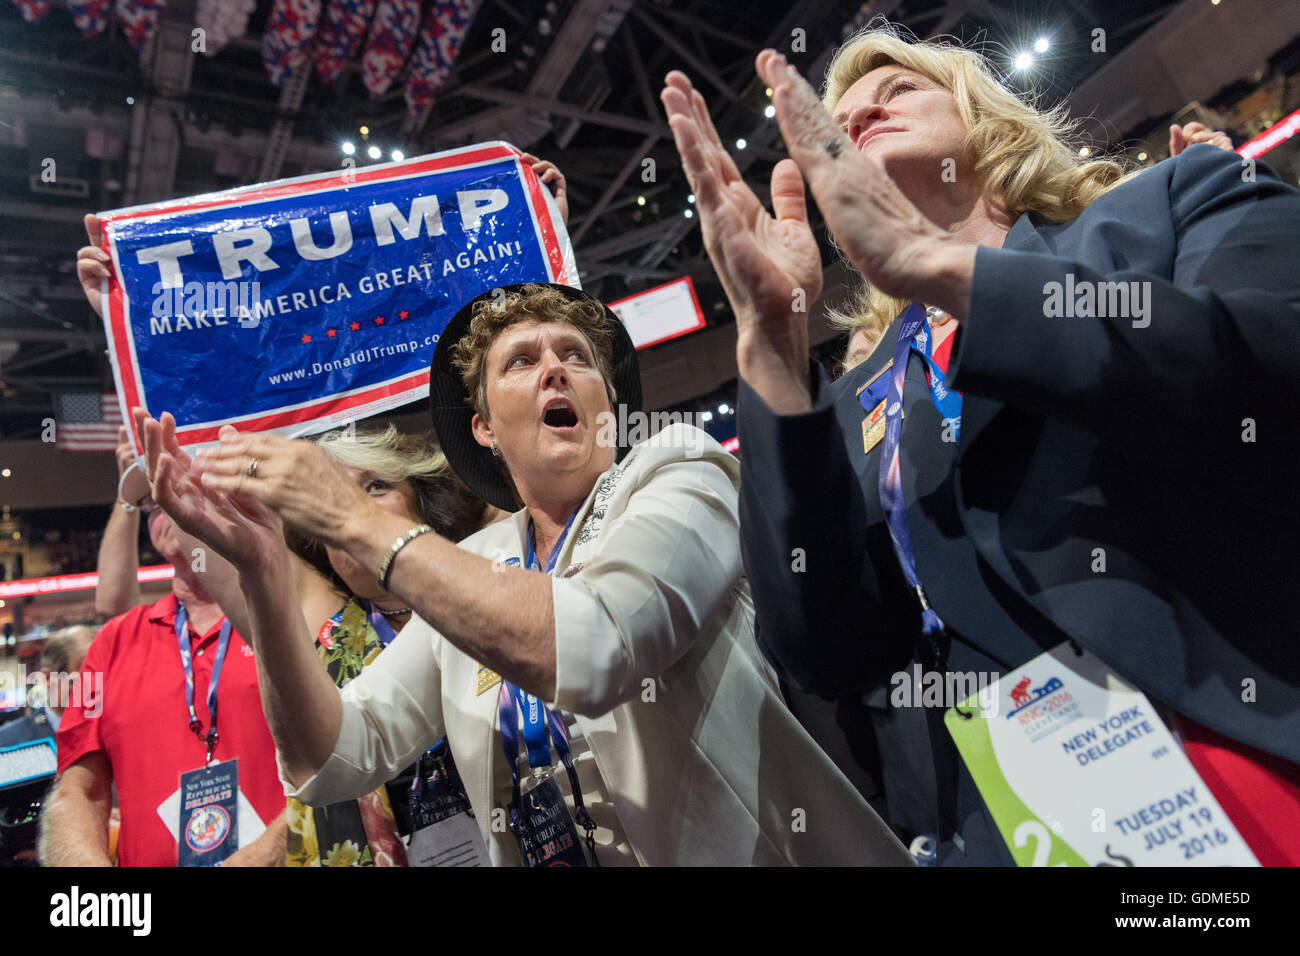 Cleveland, Ohio, USA. 19th July, 2016. New York delegates celebrate the nomination of Donald Trump during the second Stock Photo